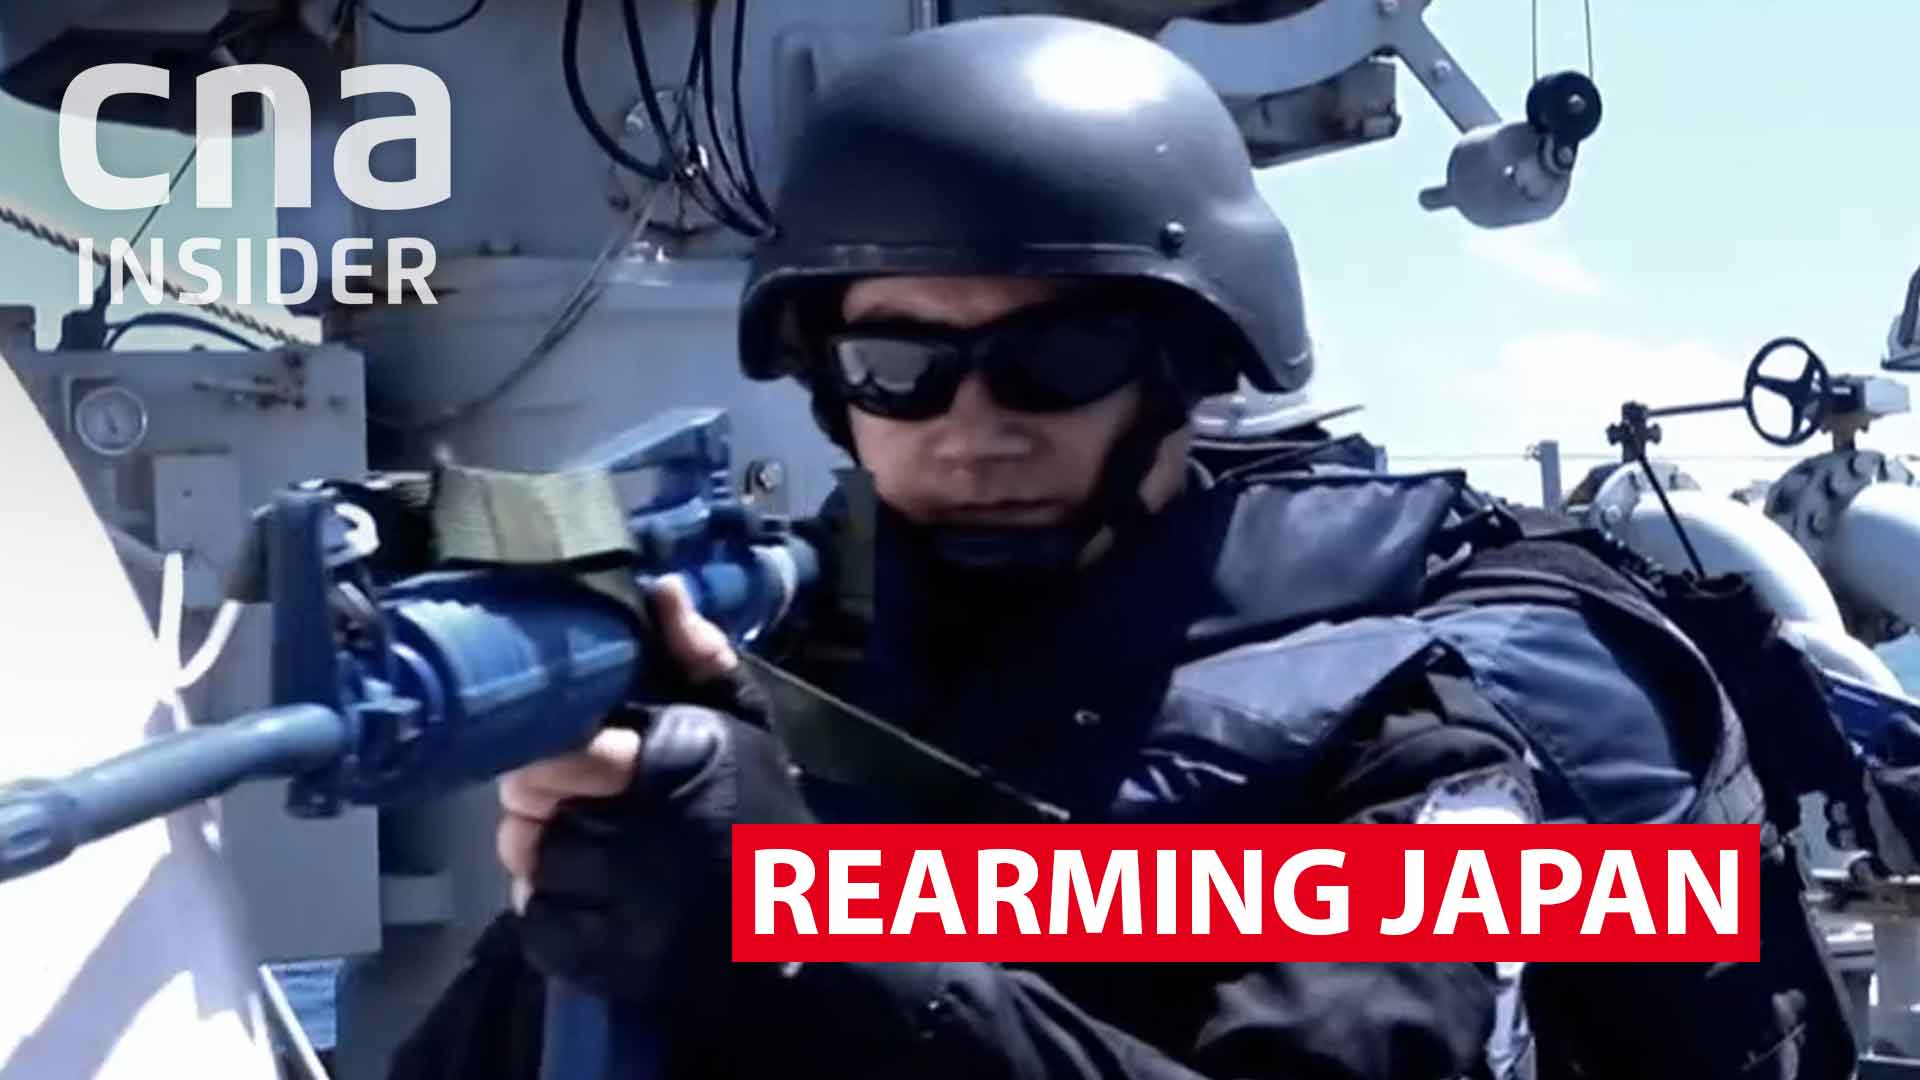 Is Japan rearming bad for Asia?